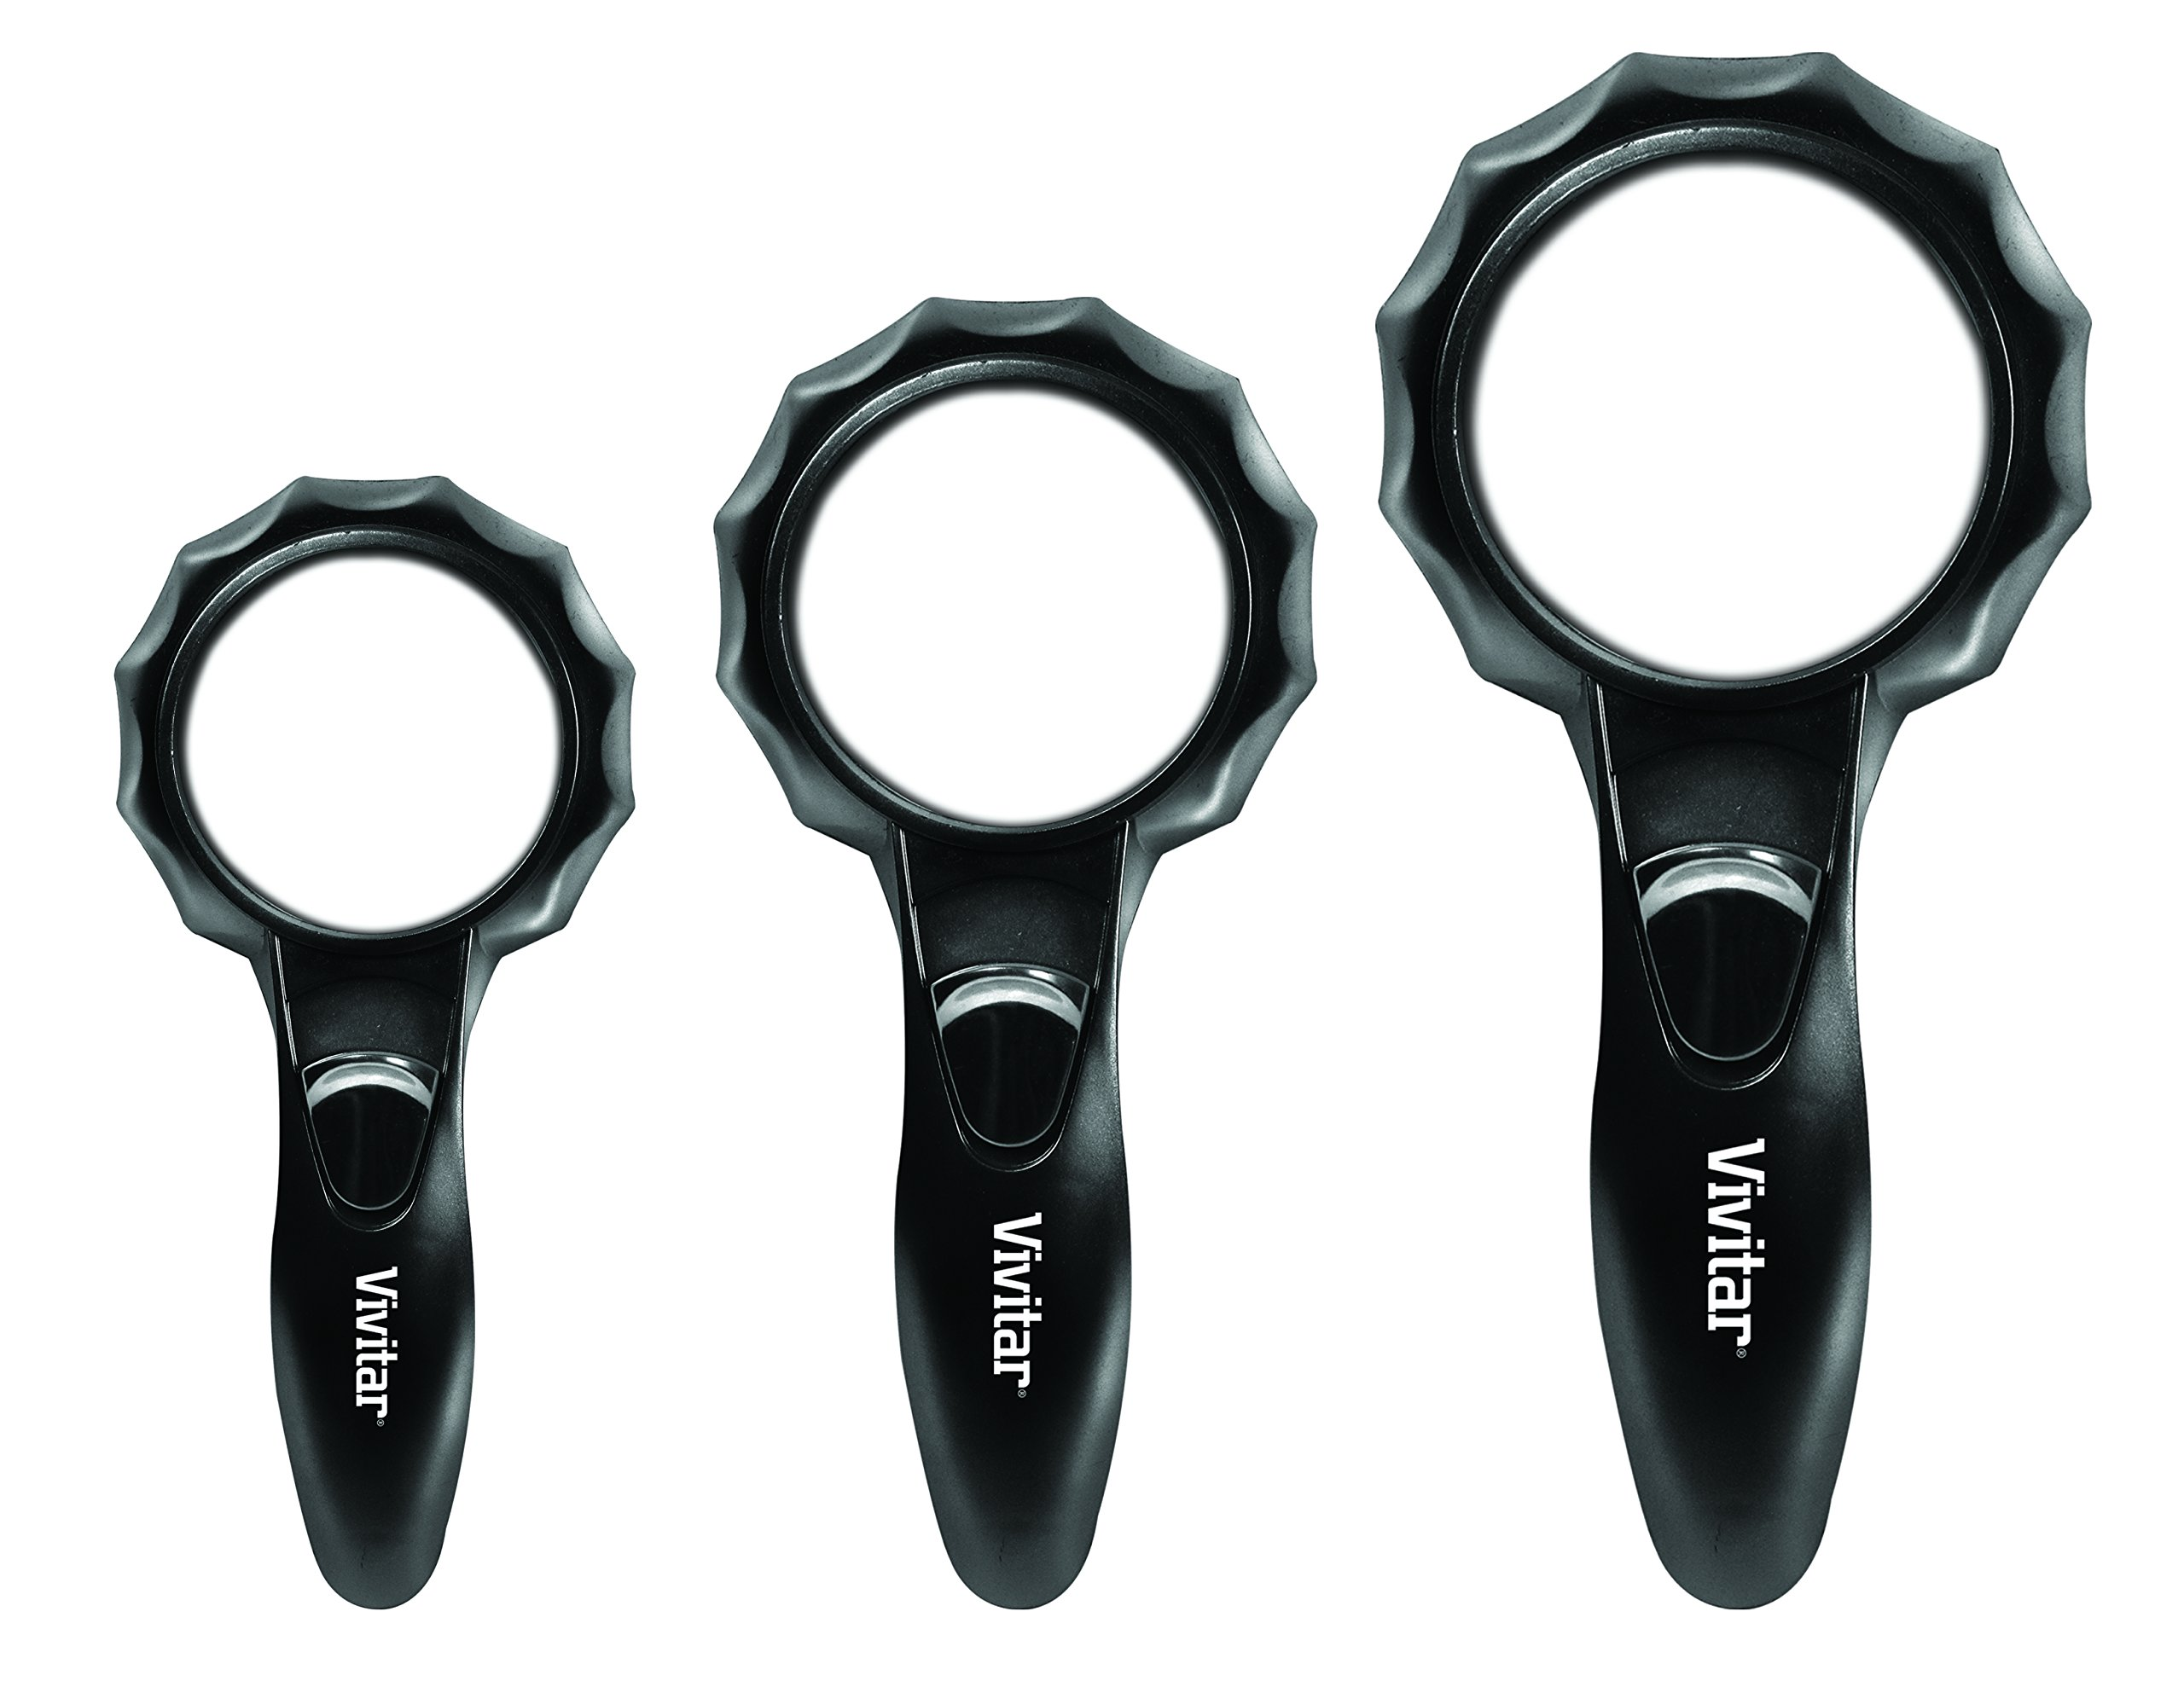 Vivitar Optics LED Magnifying Glasses 3-Pack, Viv-Mag-3